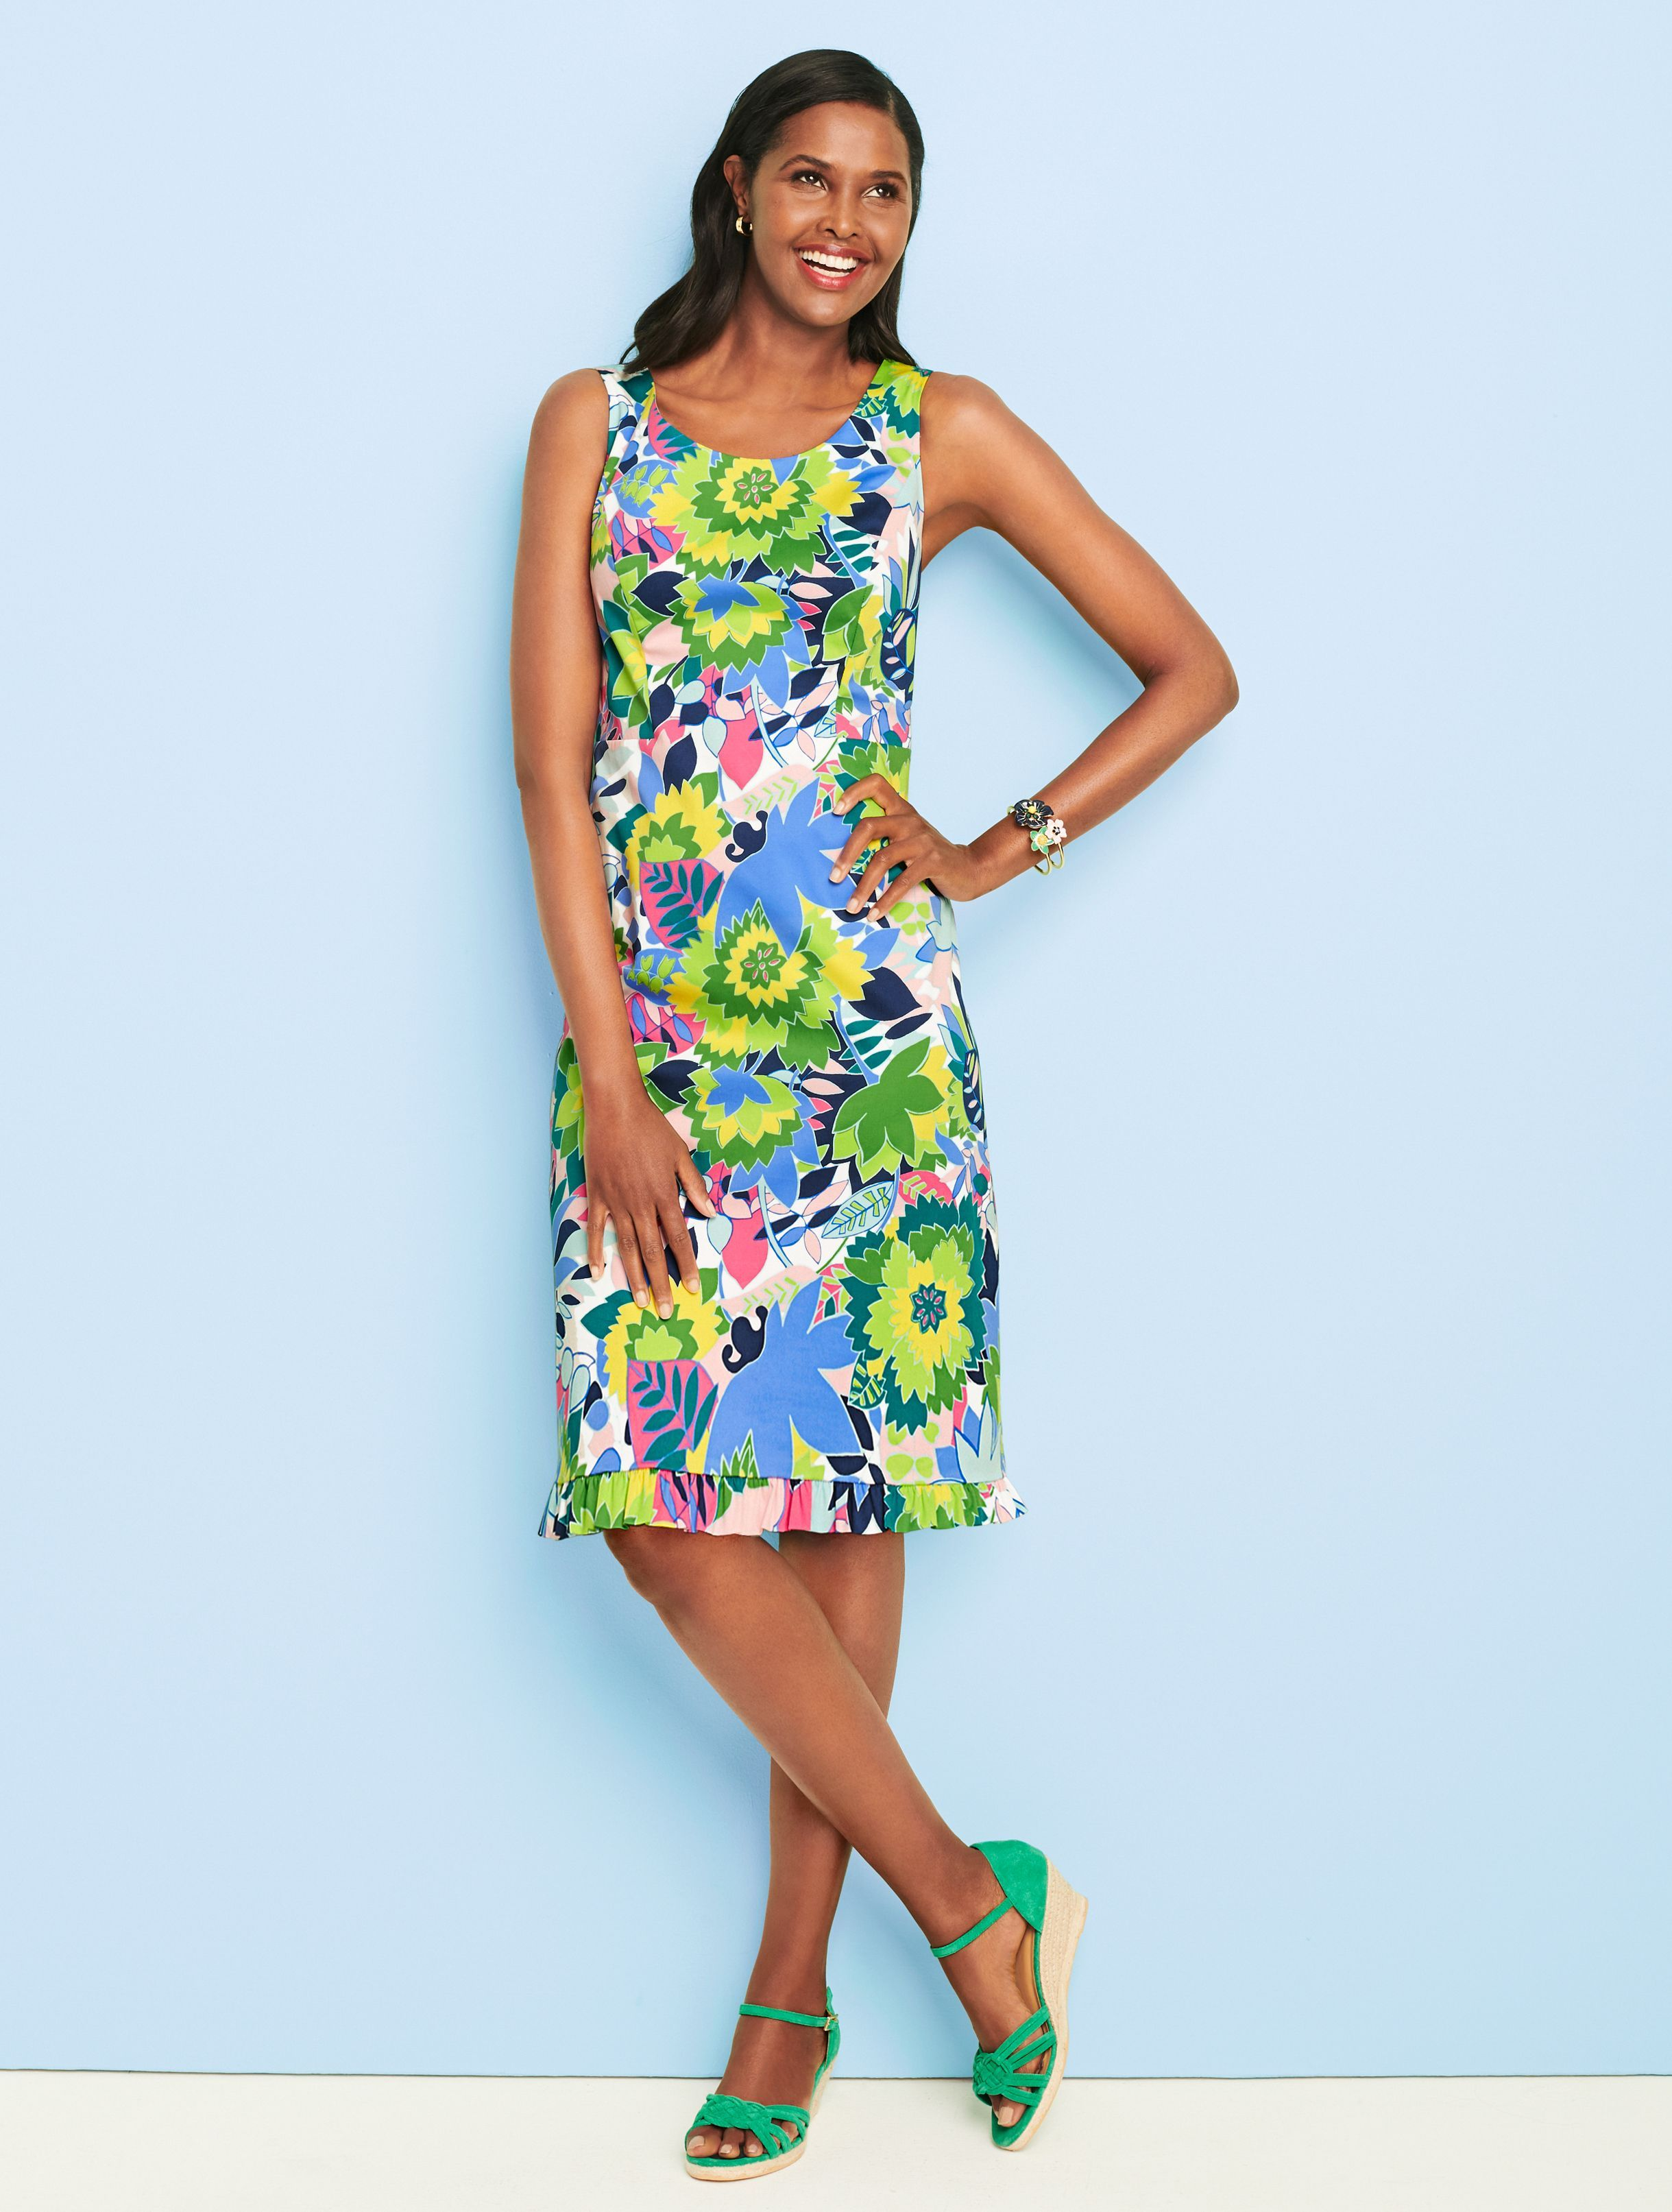 An Island Inspired Sateen Sheath In A Tropical Geo Floral Print It S A Definite Resort Ready Wonder Whether You Ta Dresses Clothes For Women Knit Shift Dress [ 3226 x 2439 Pixel ]